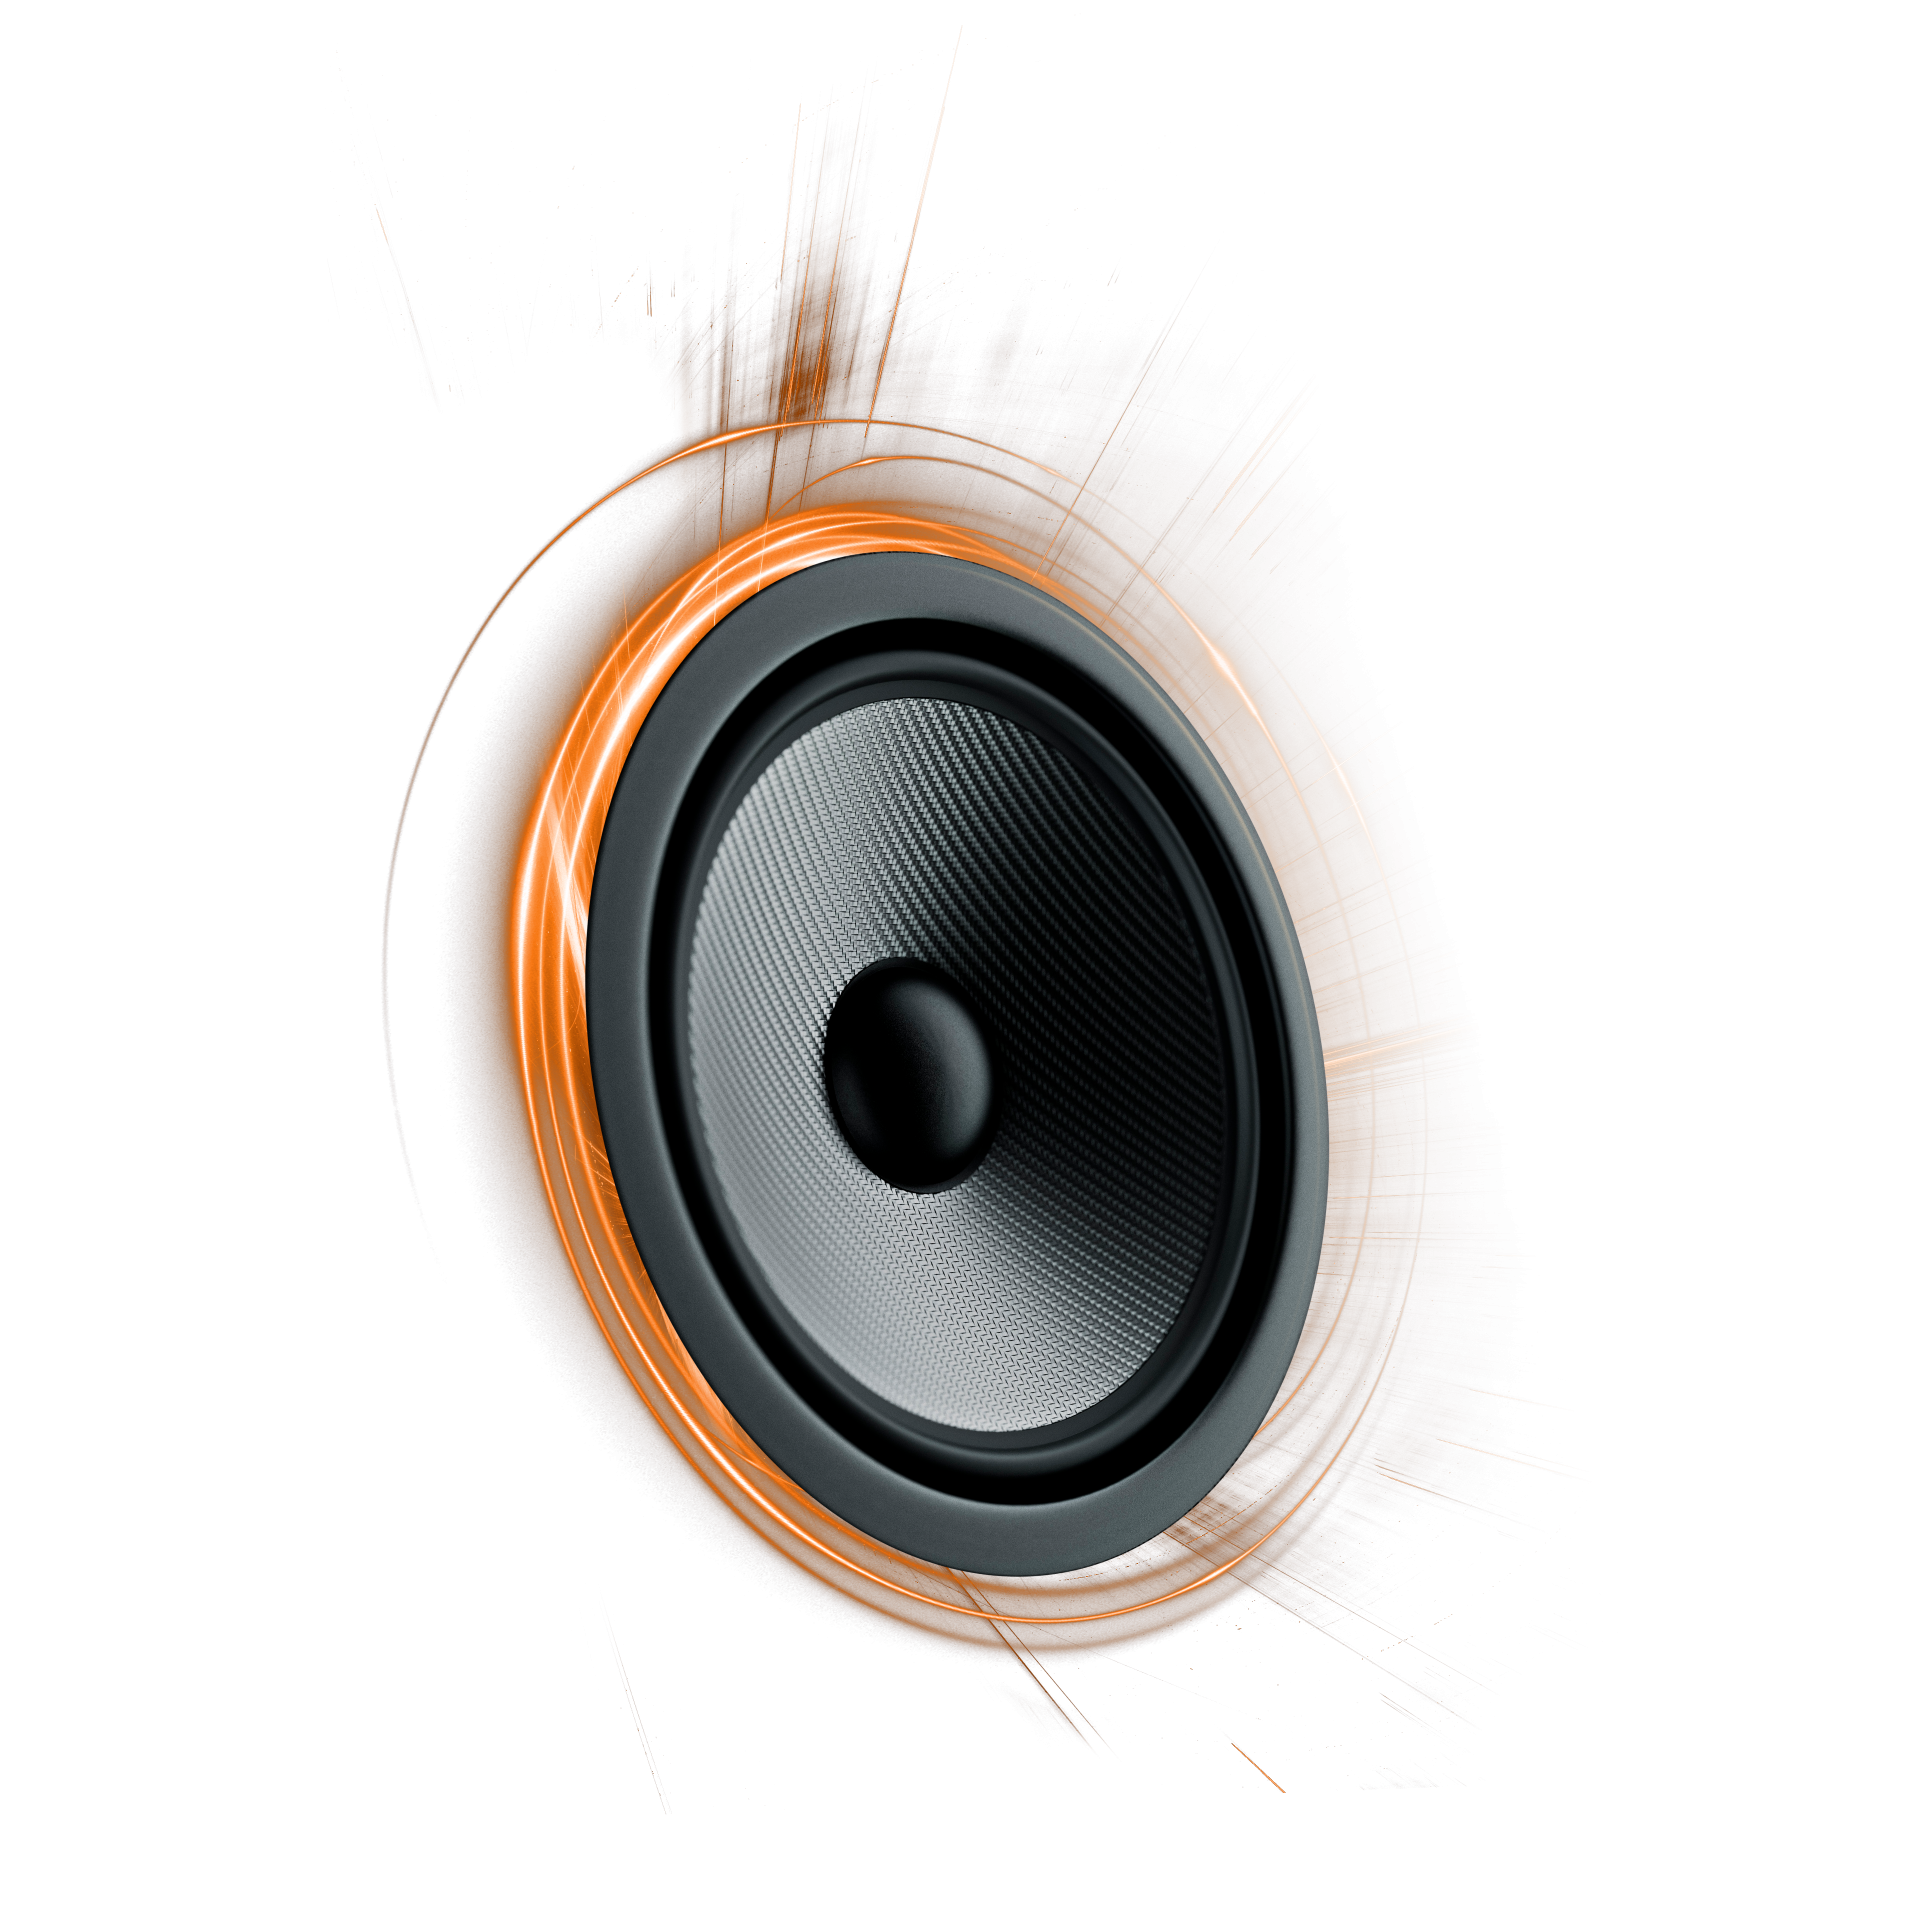 AOCG_SPEAKERS_FRONT.png